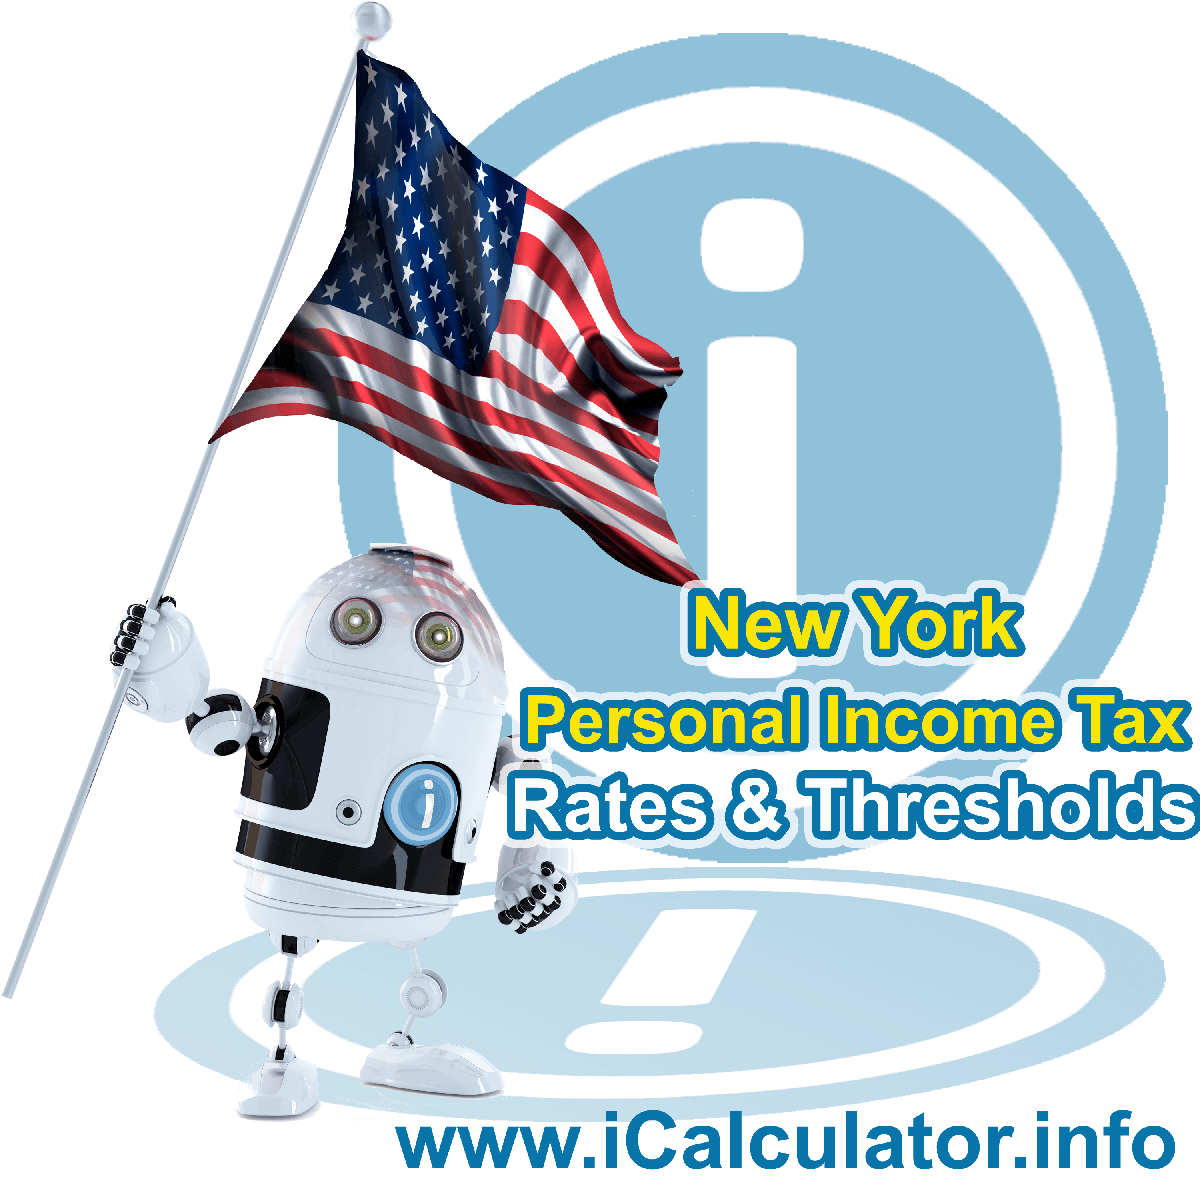 New York State Tax Tables 2013. This image displays details of the New York State Tax Tables for the 2013 tax return year which is provided in support of the 2013 US Tax Calculator